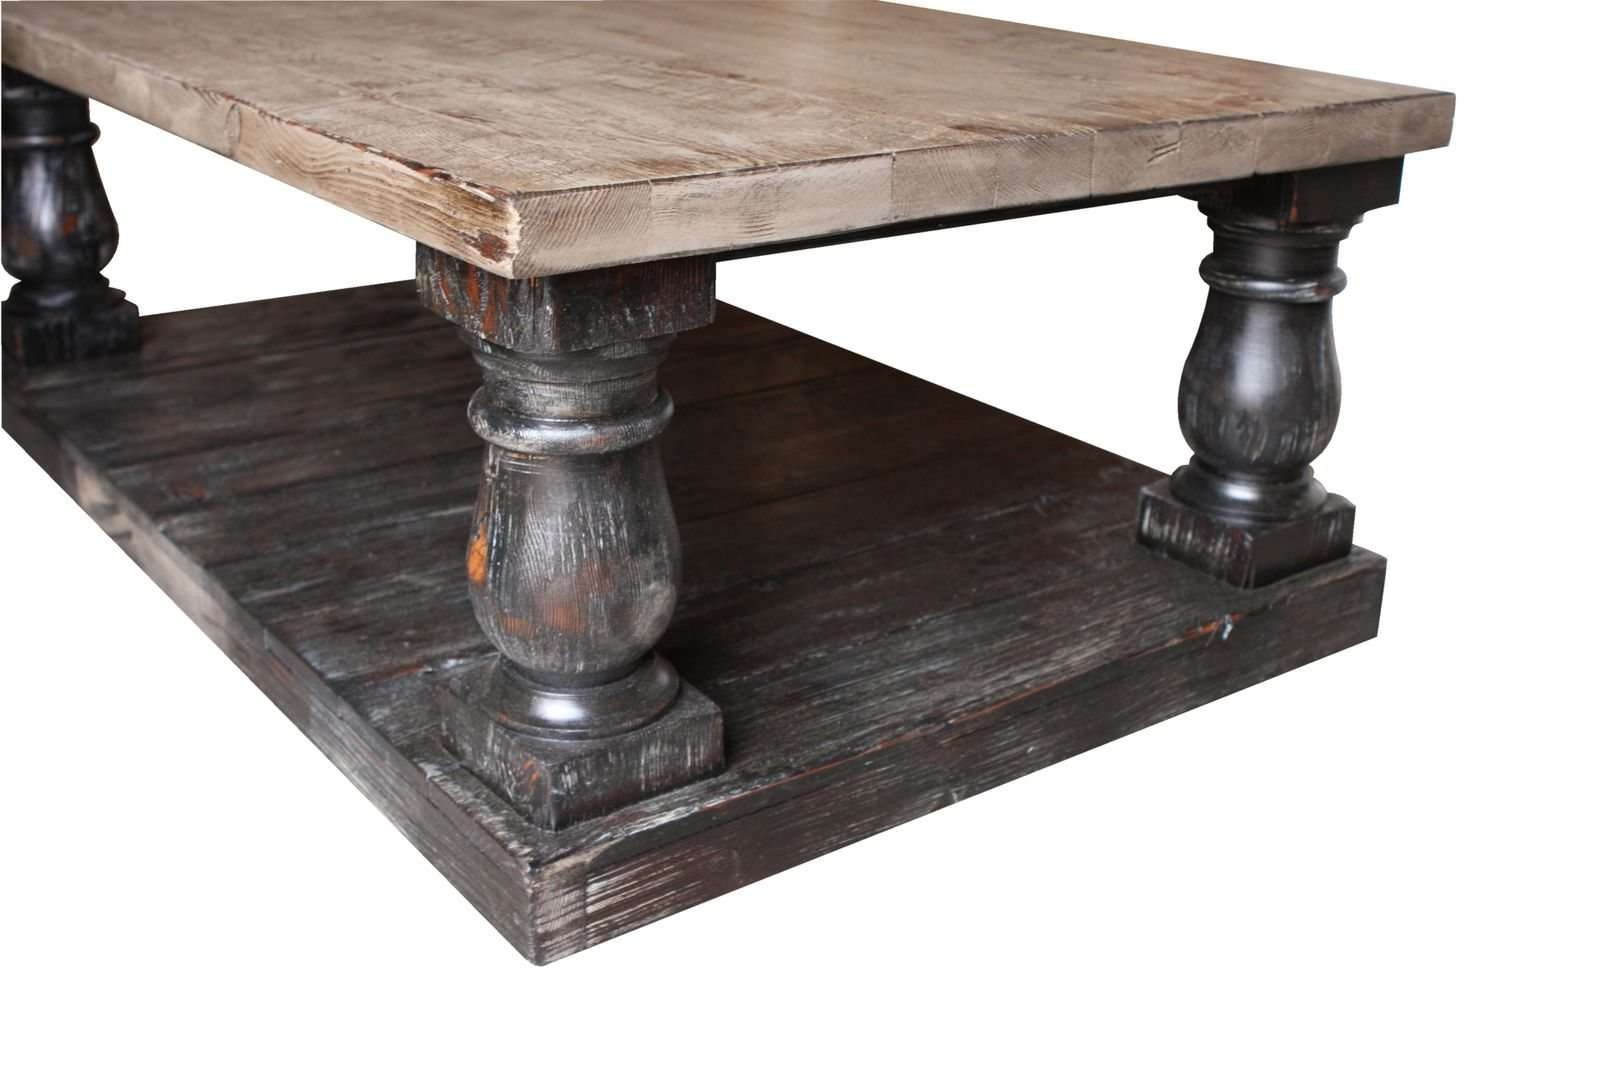 Coffee Tables : Exquisite Rustic Wood Coffee Table Square Tables Within Most Current Large Low Rustic Coffee Tables (View 7 of 20)